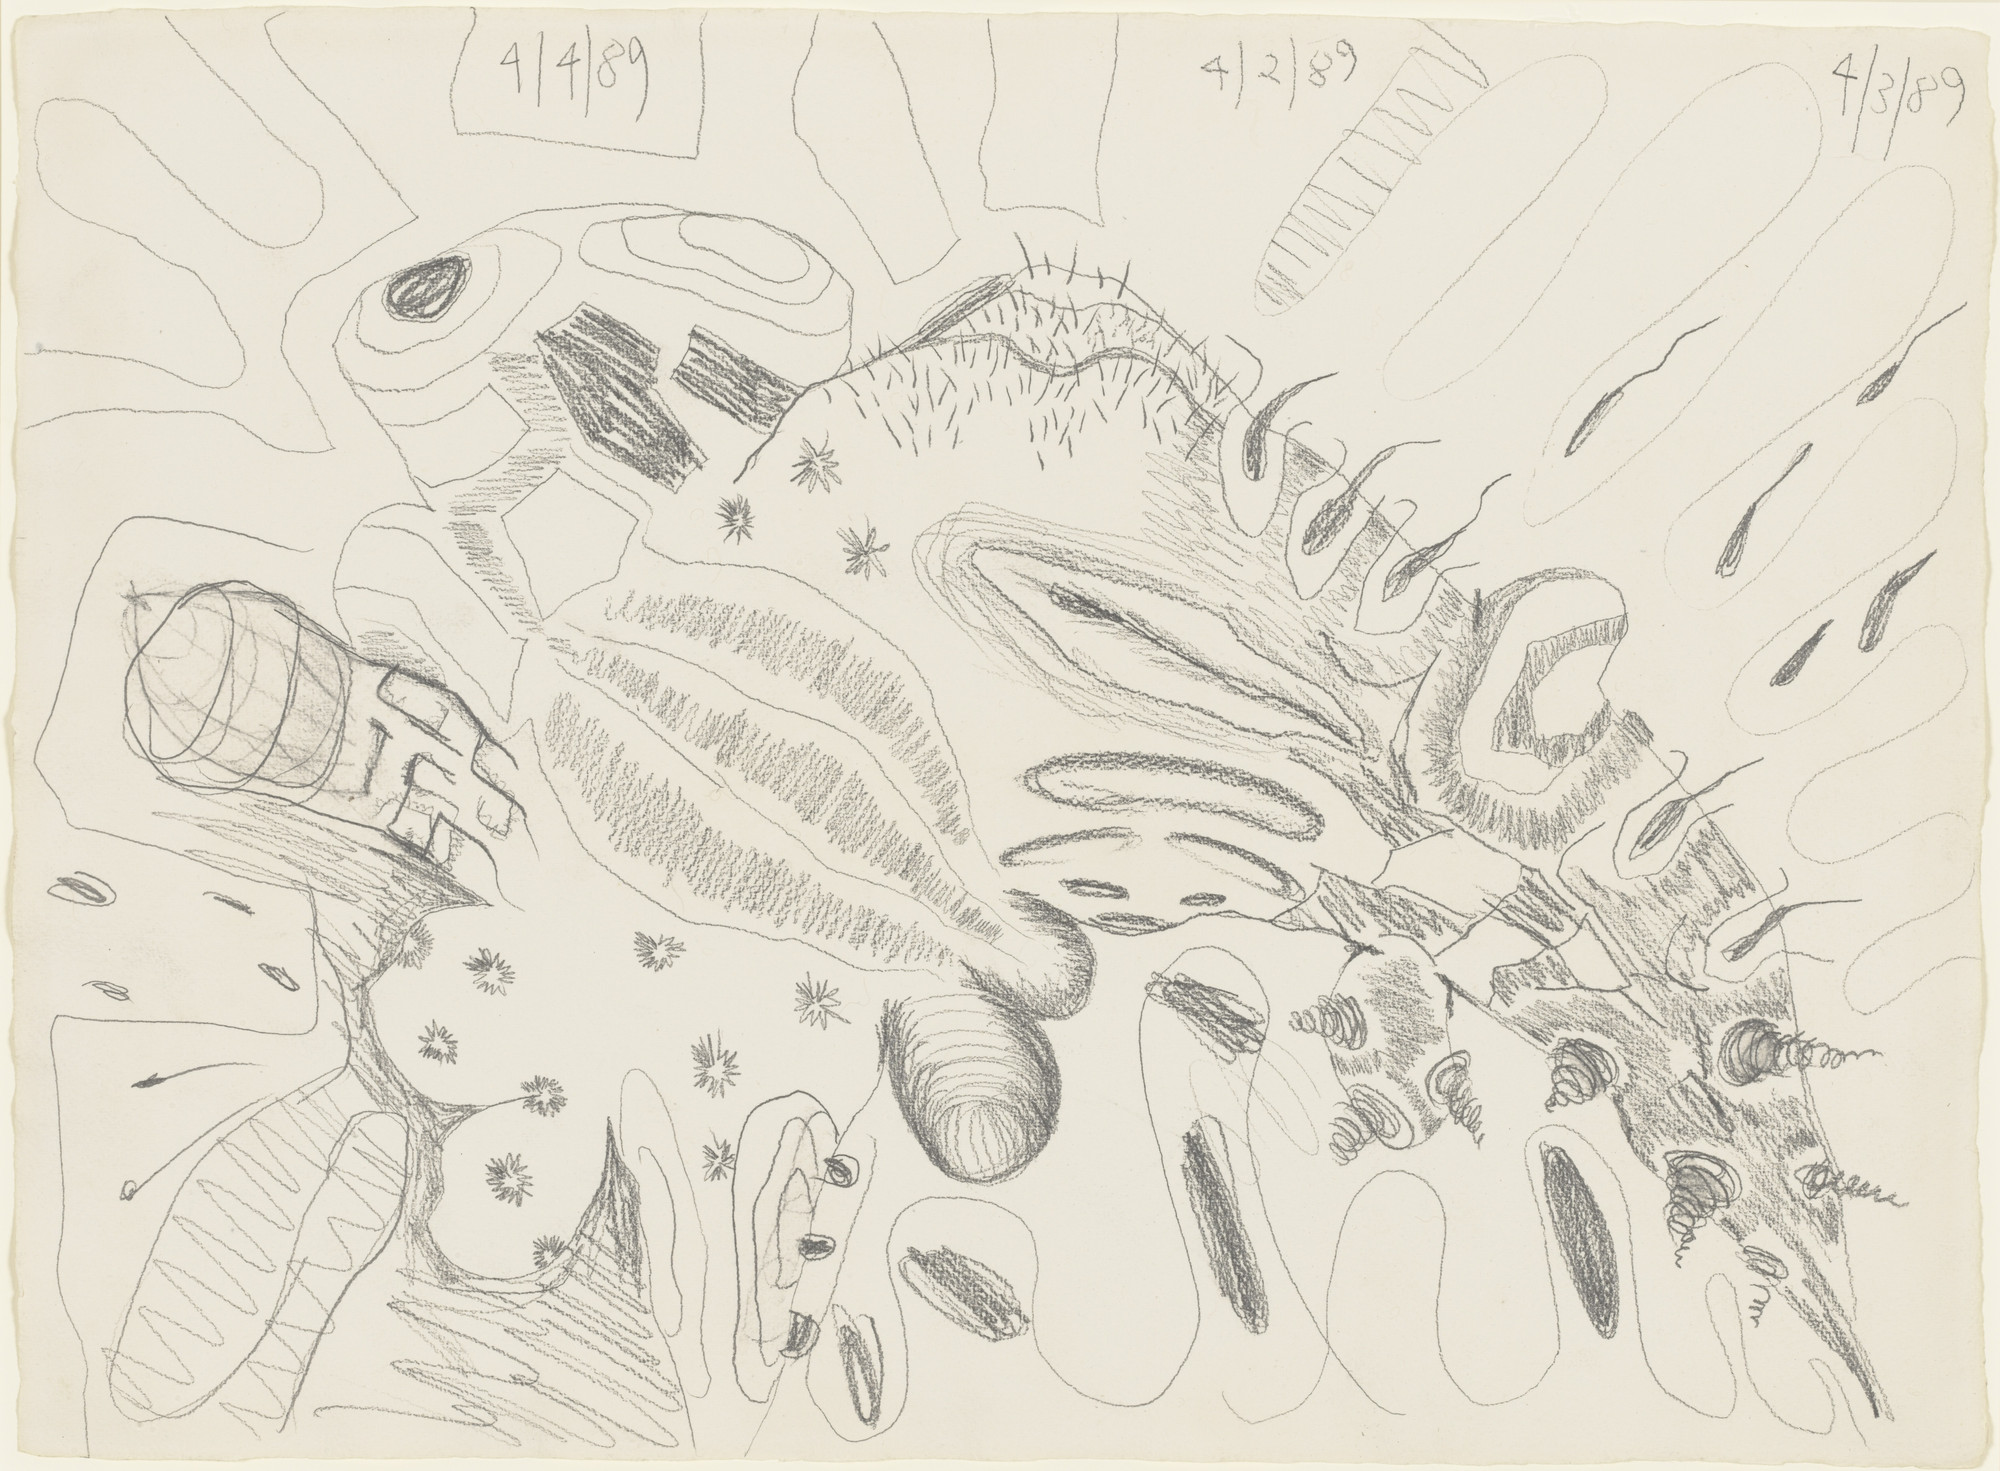 Carroll Dunham. Four Shapes. (1989)